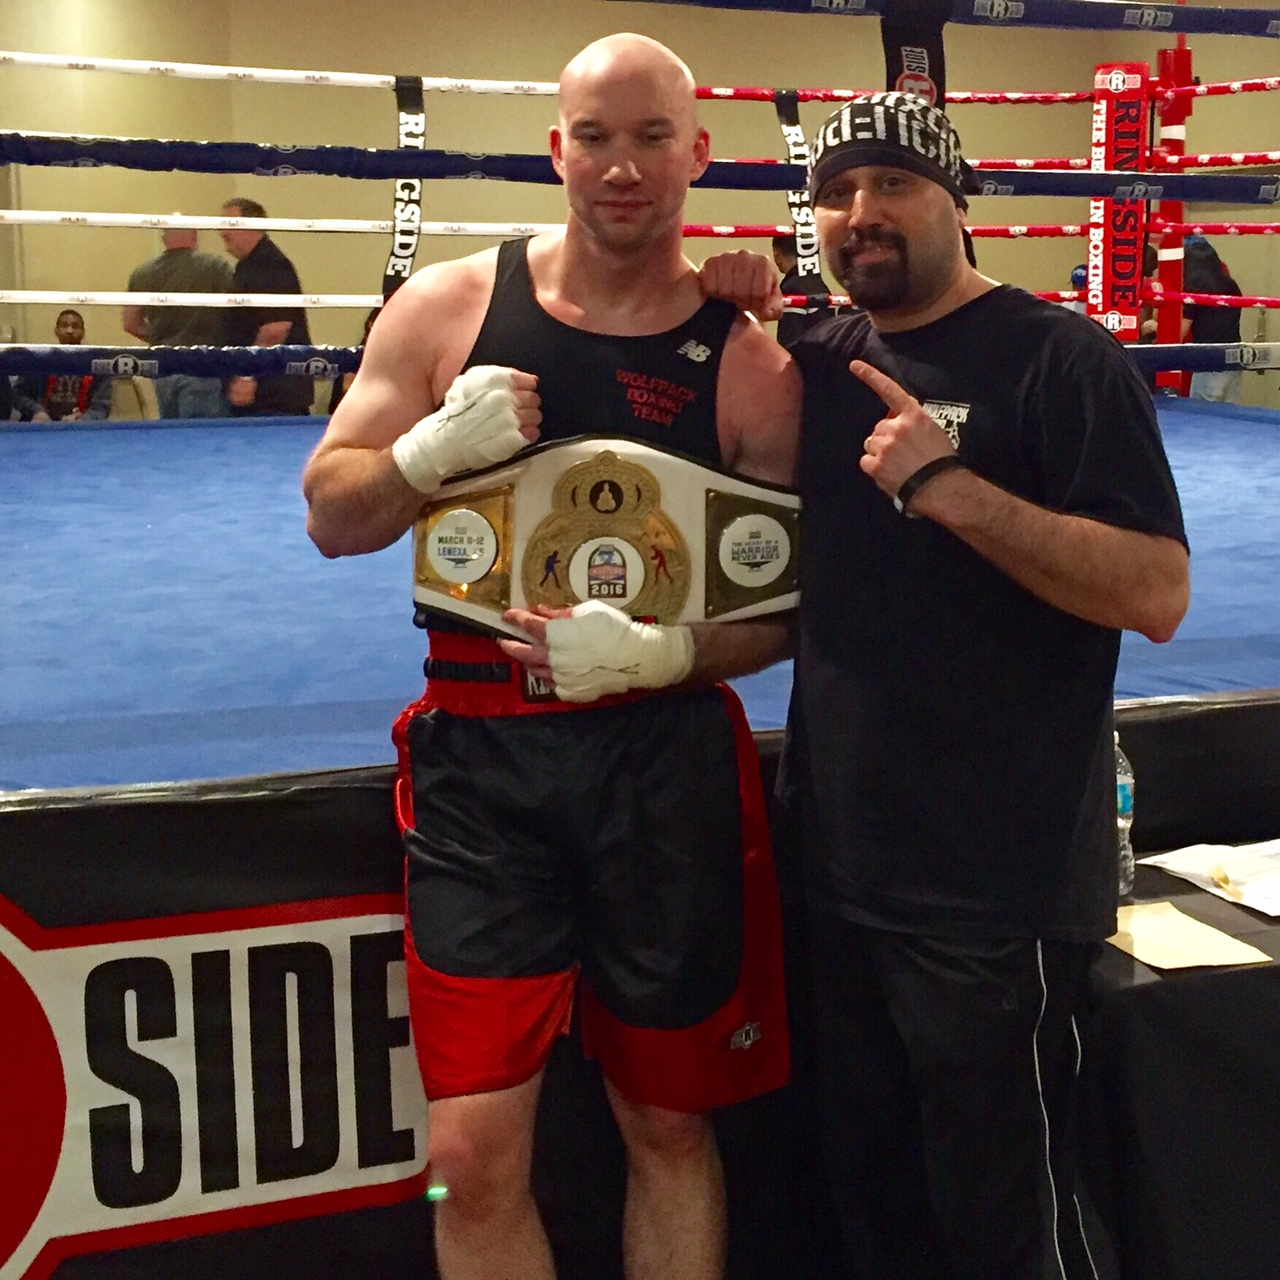 Jeff Mucci Masters Division Boxing